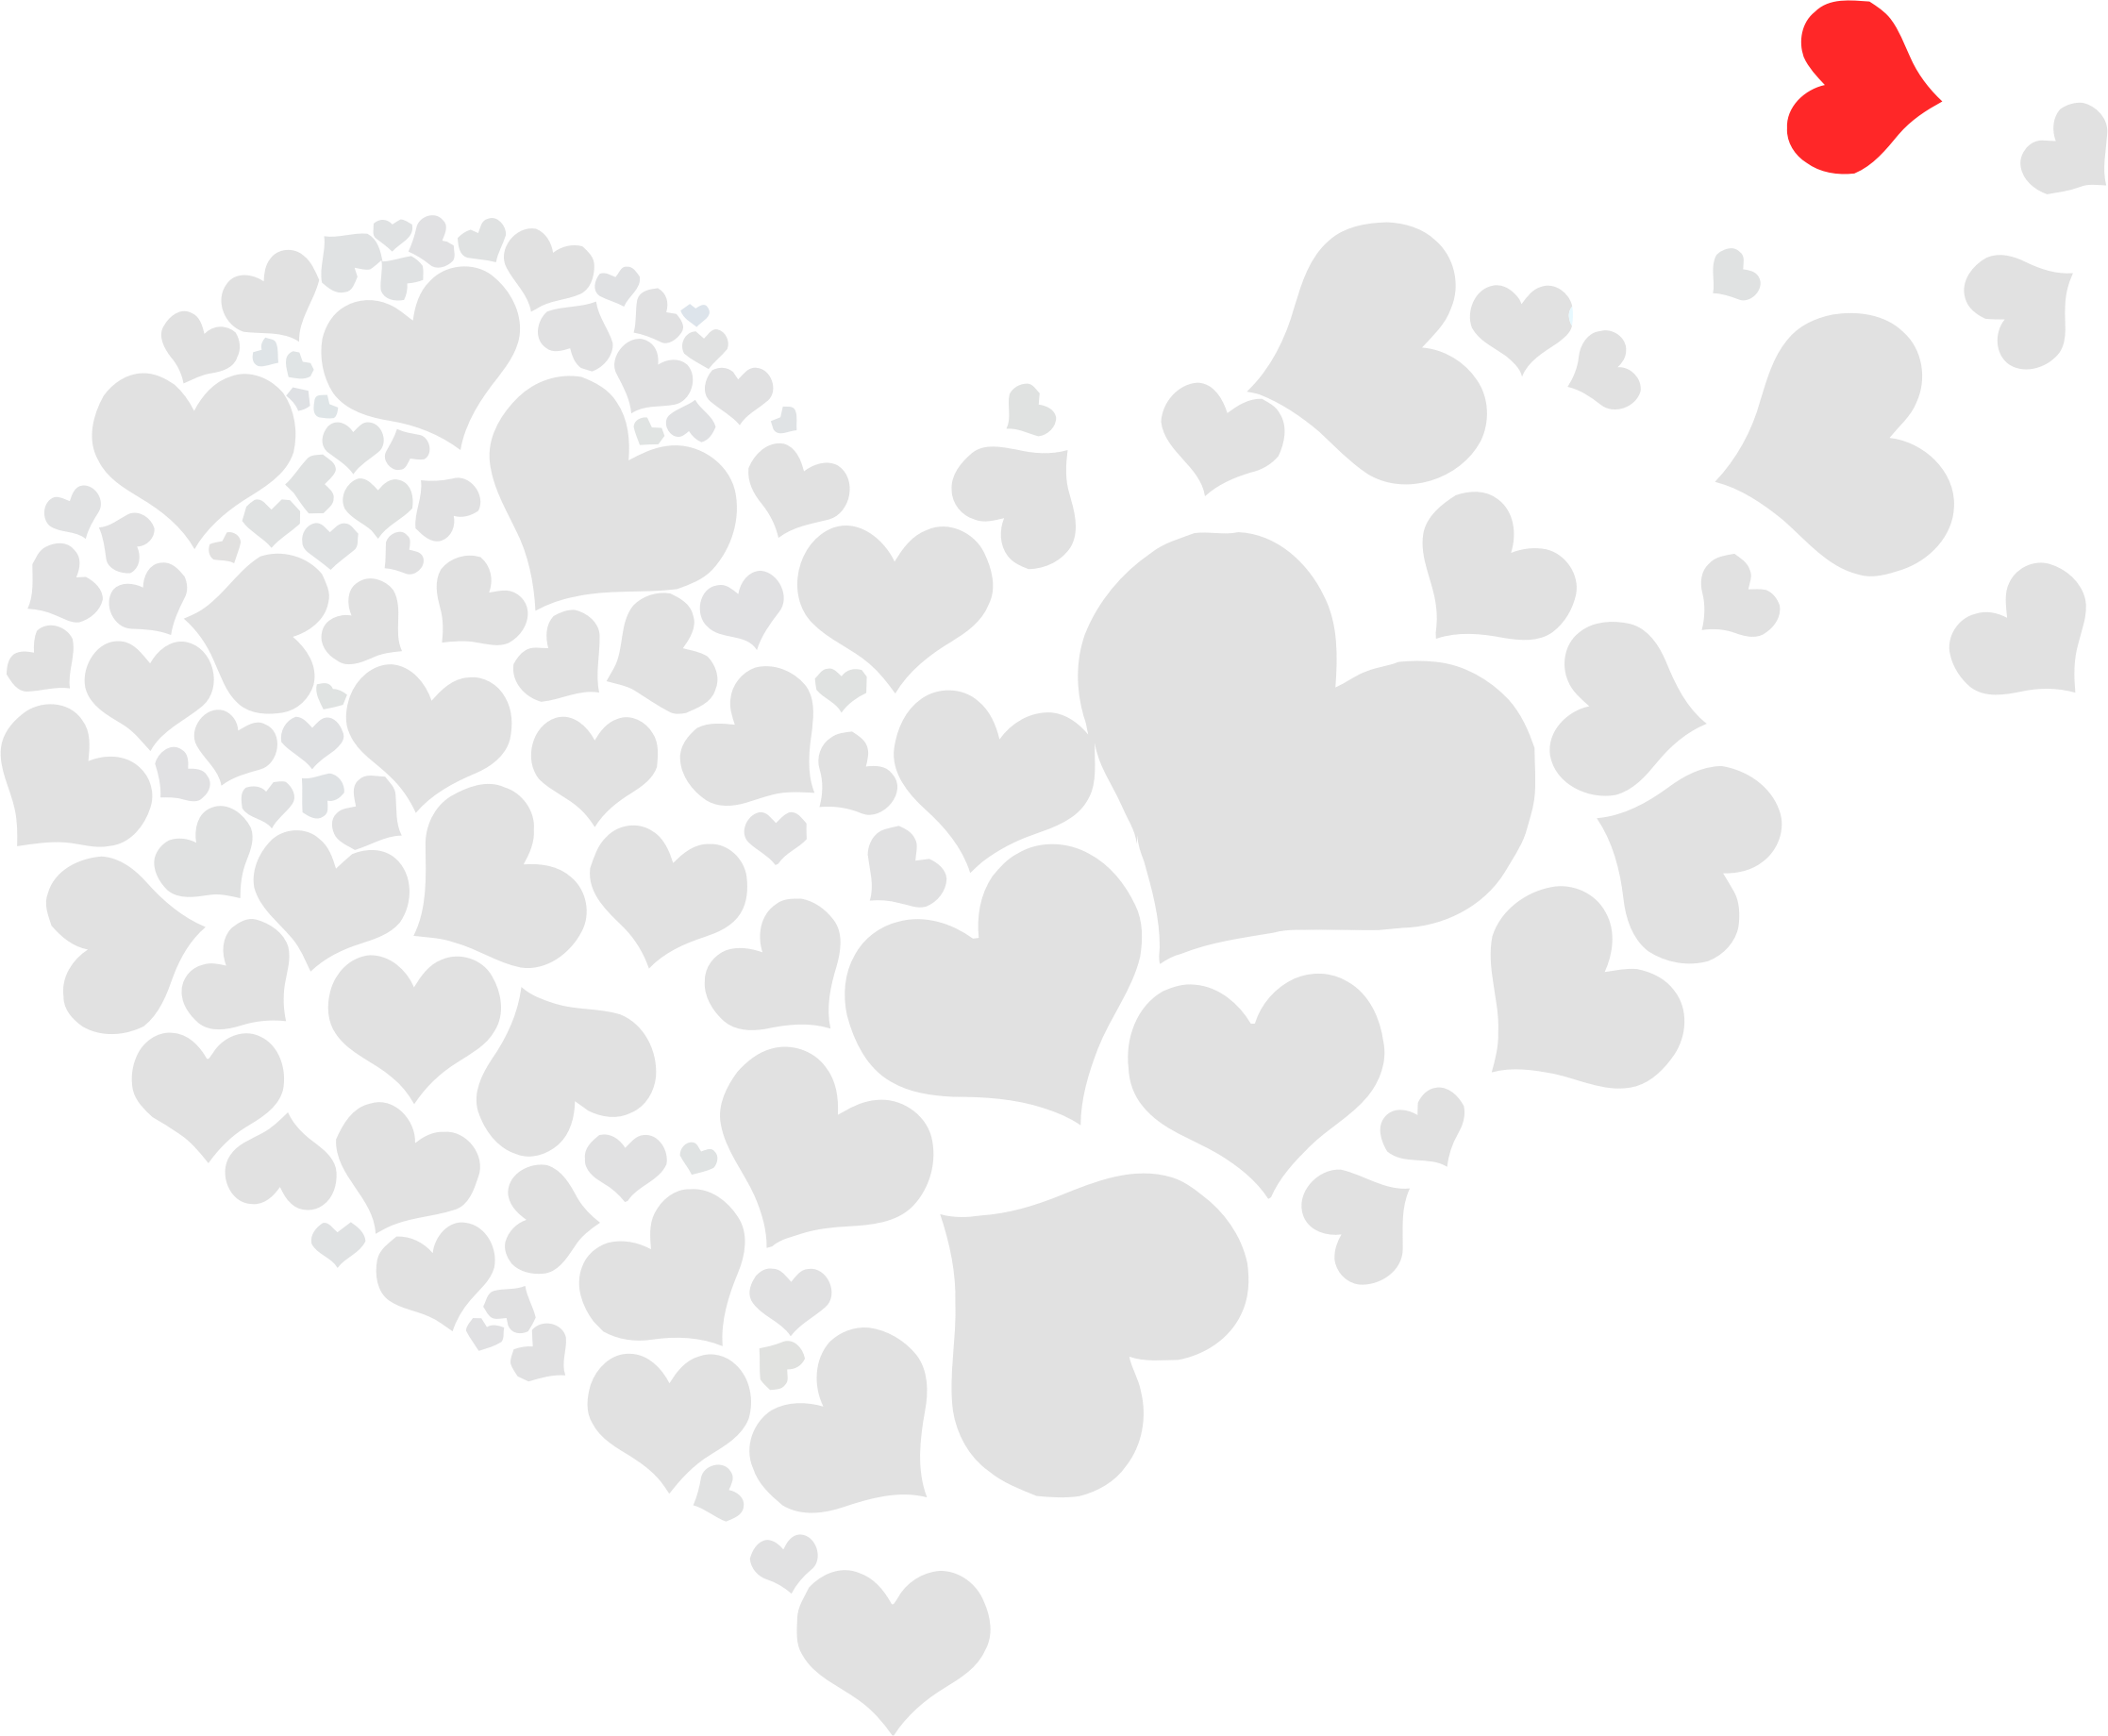 Hearts background png. Torn heart no icons